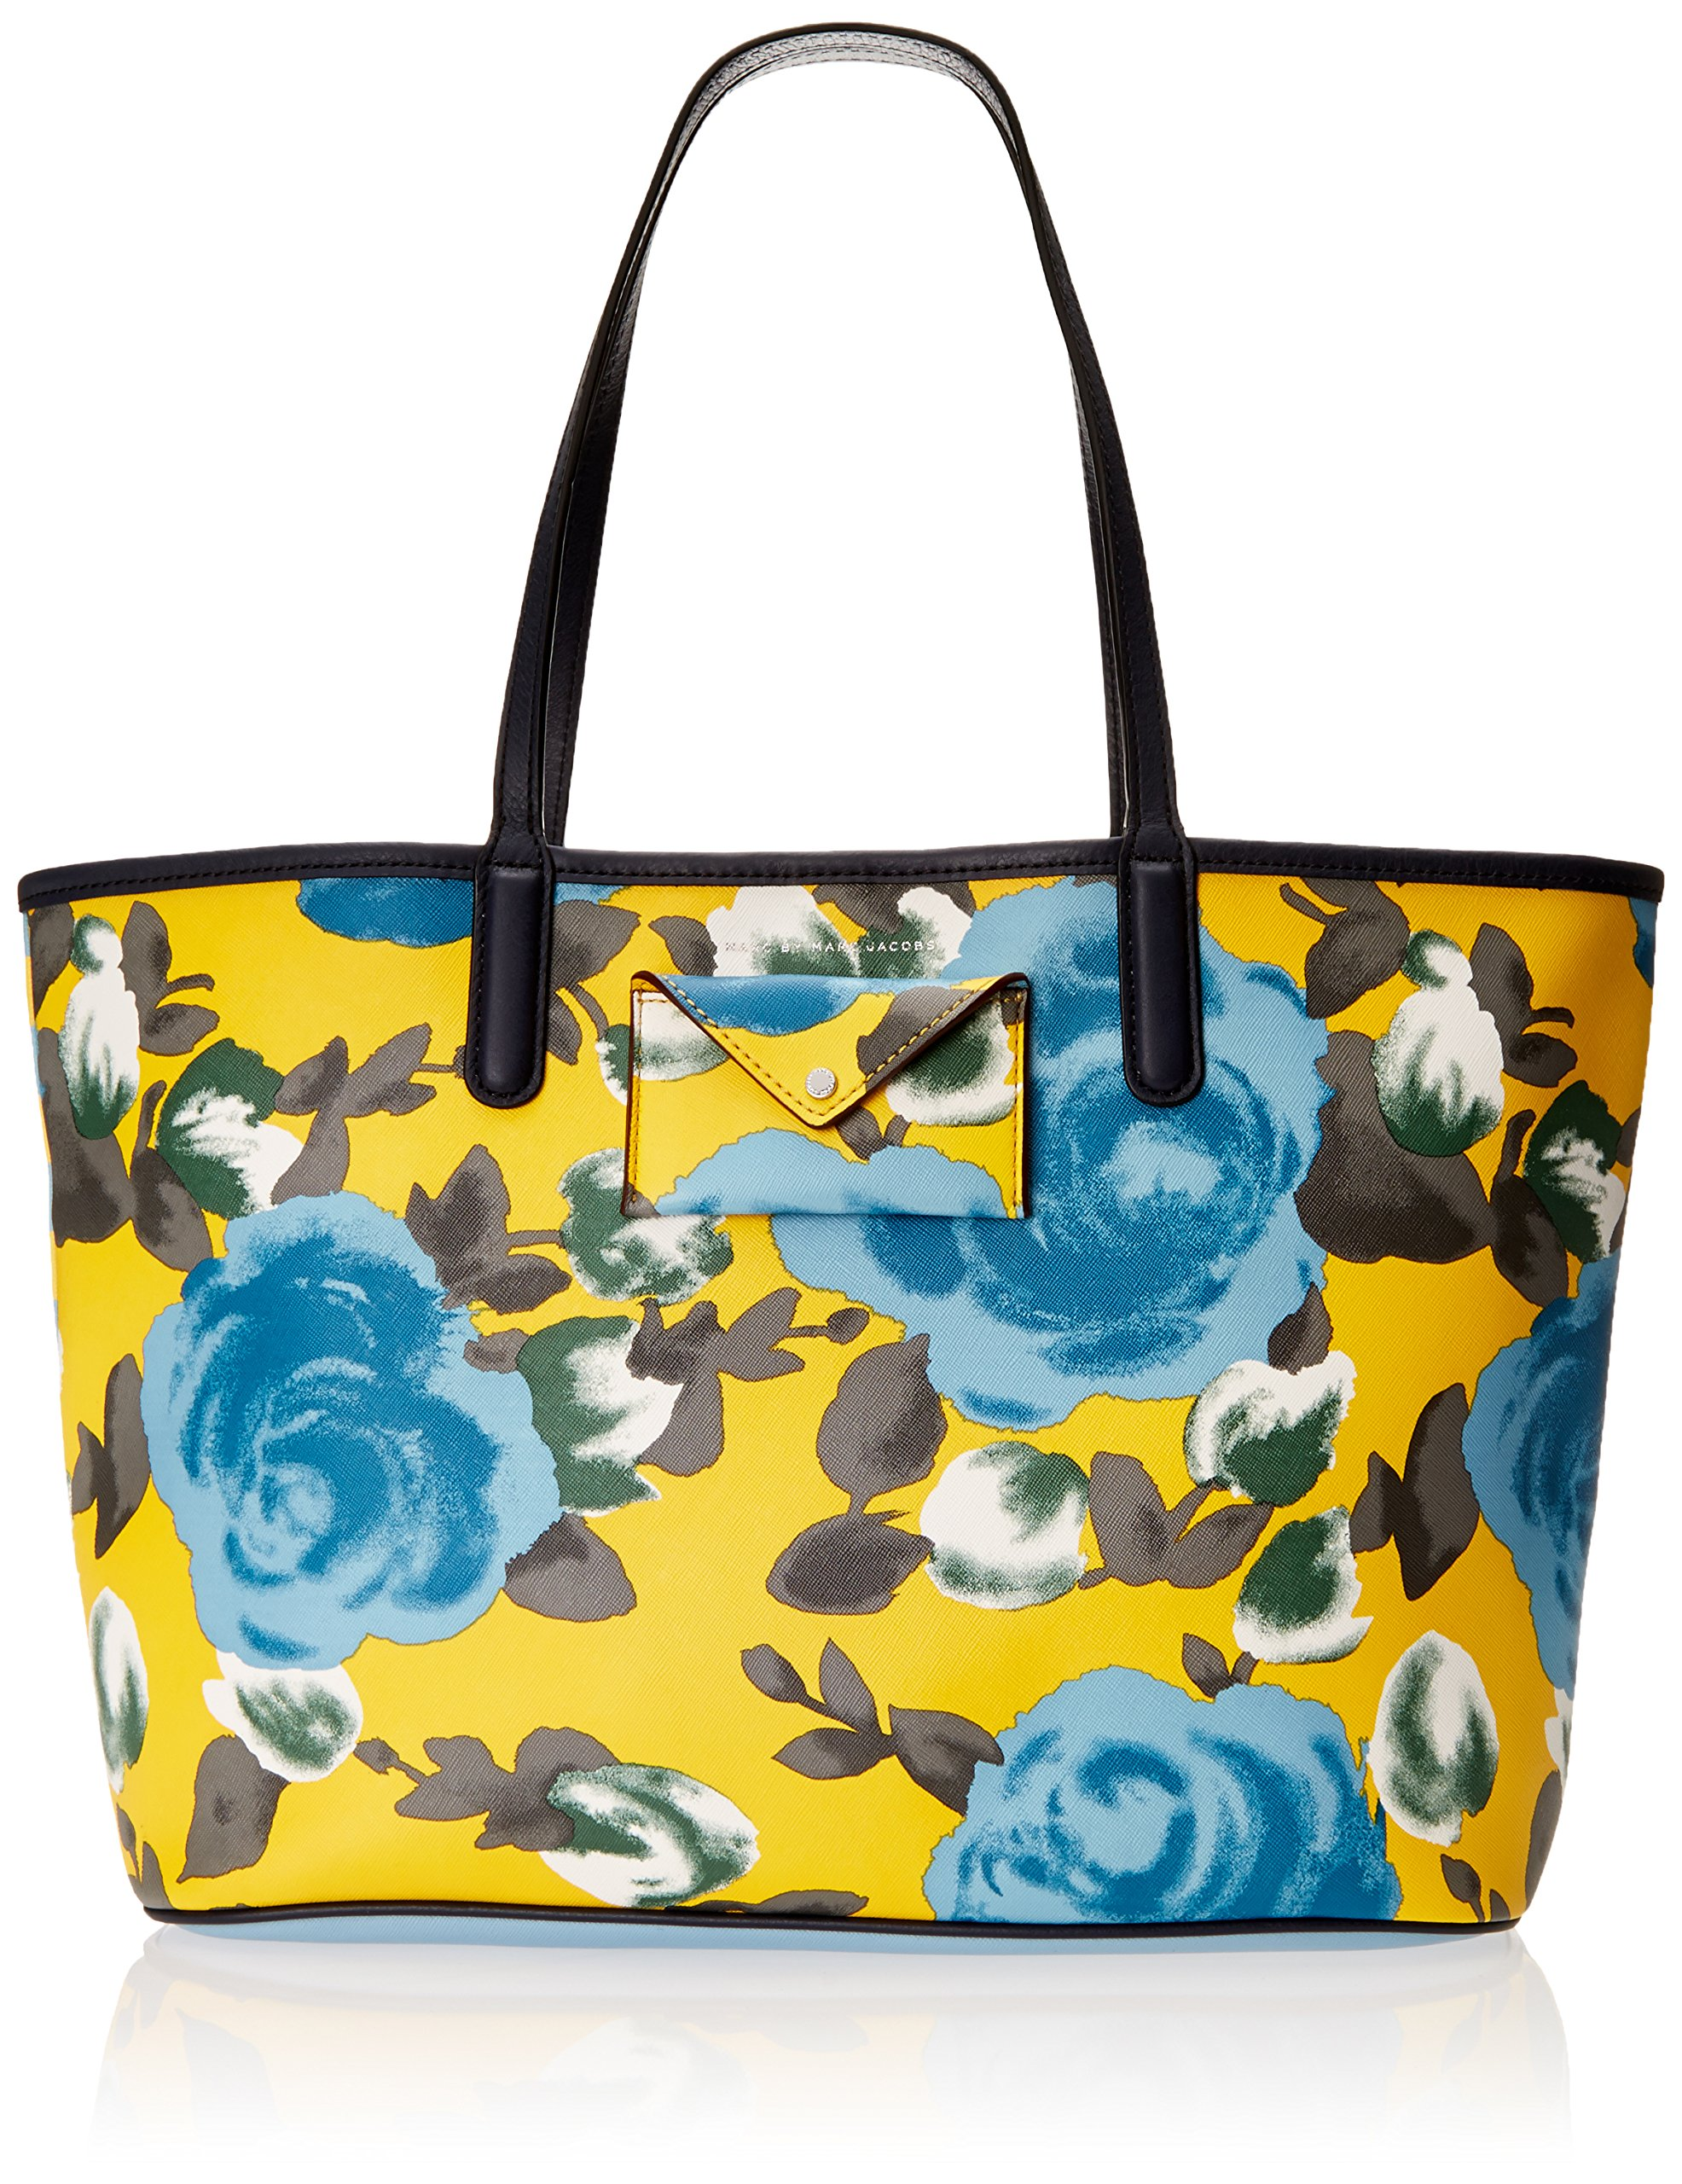 Marc by Marc Jacobs Metropolitote Jerrie Rose 48 Tote, Yellow Jacket Multi, One Size by Marc by Marc Jacobs